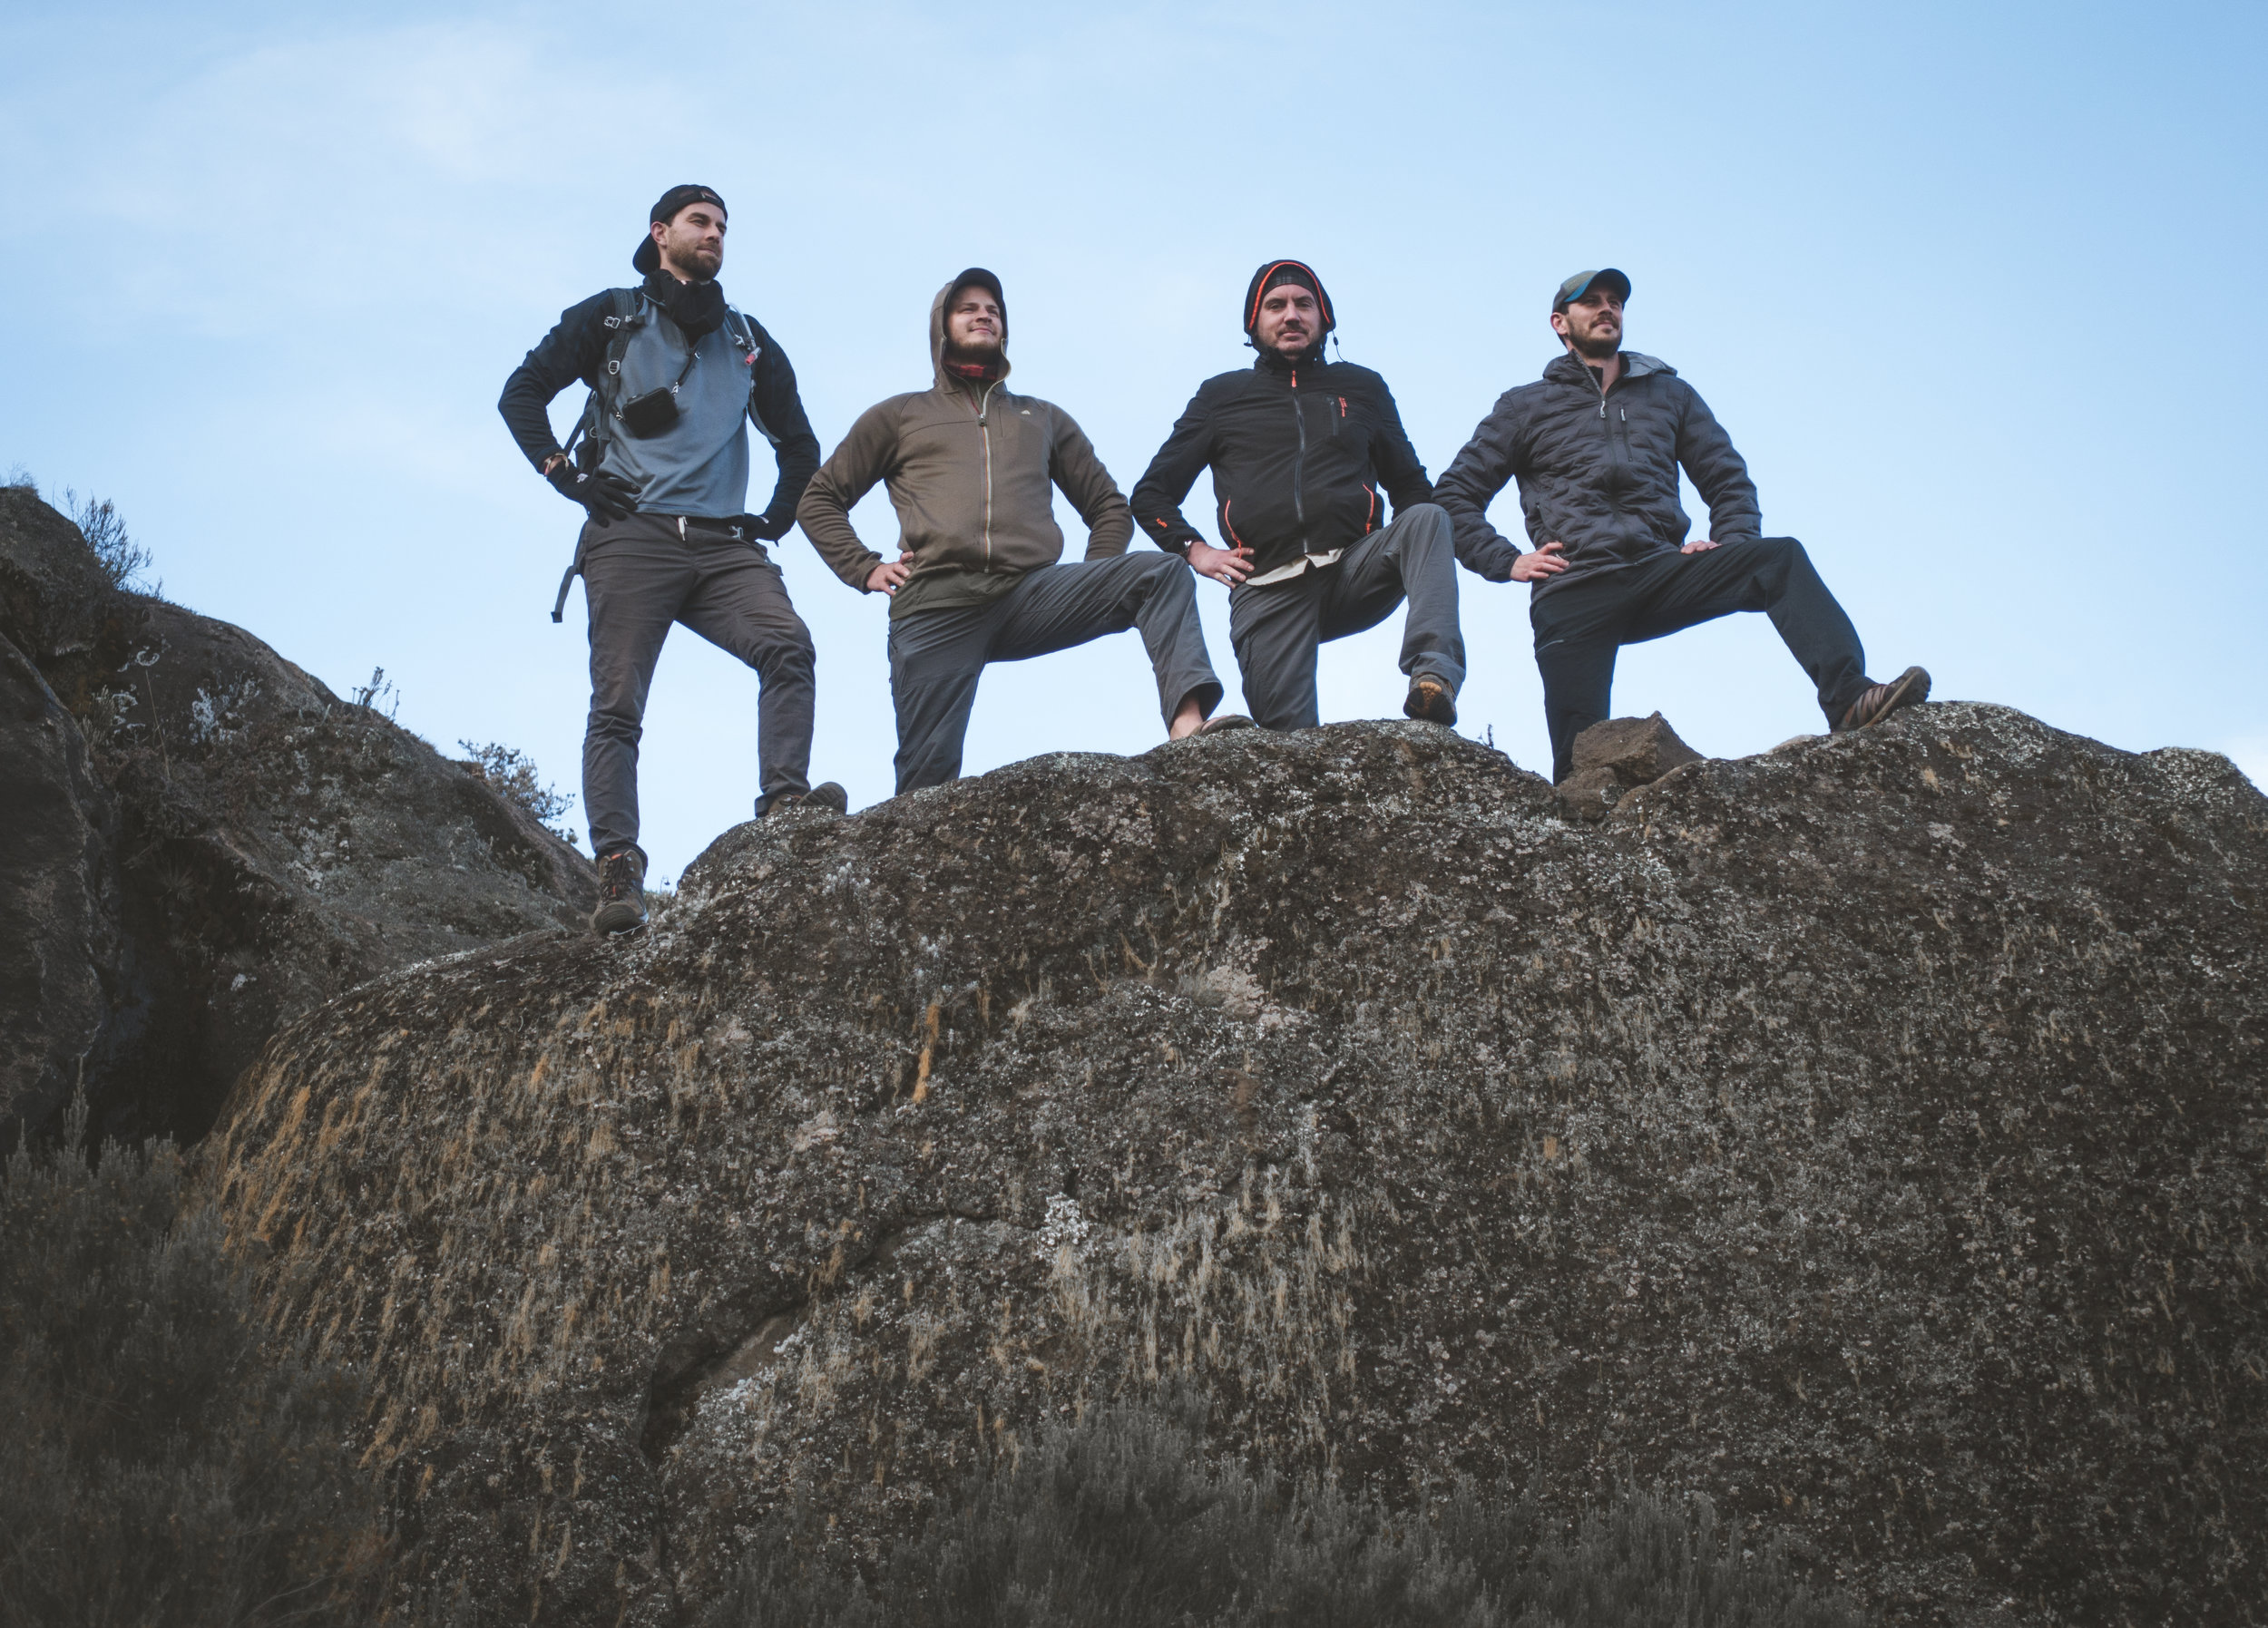 From left to right; Me, Kyle, Todd & Justin near Zebra Rock.